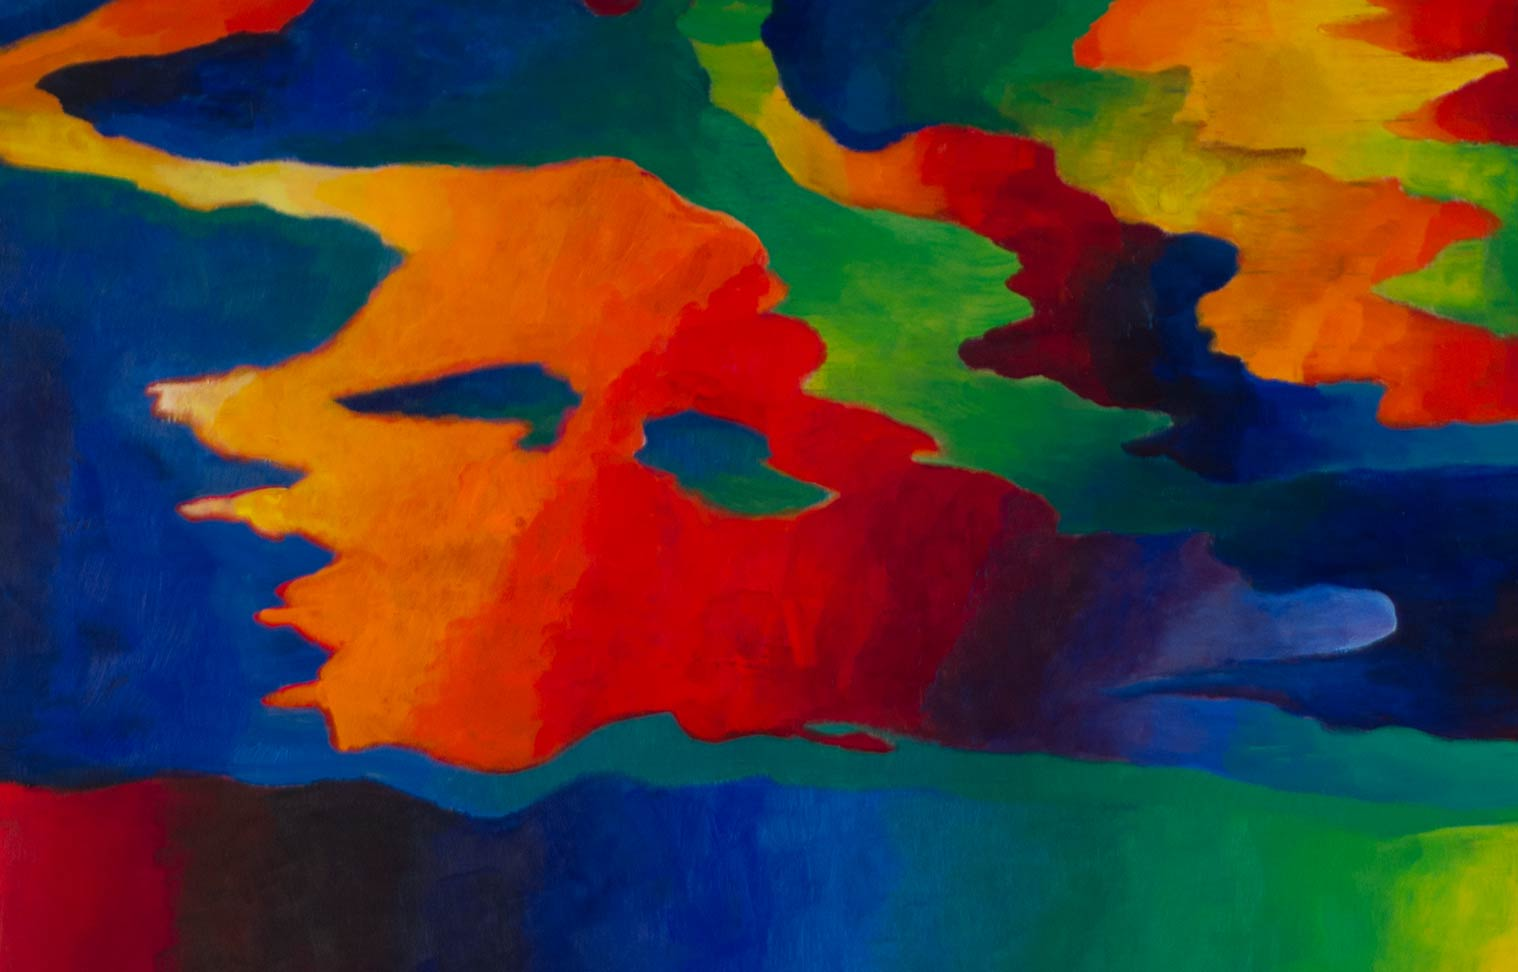 Detail of Improv Song a painting by Steve Miller with contrasting warm and cool color gradients.